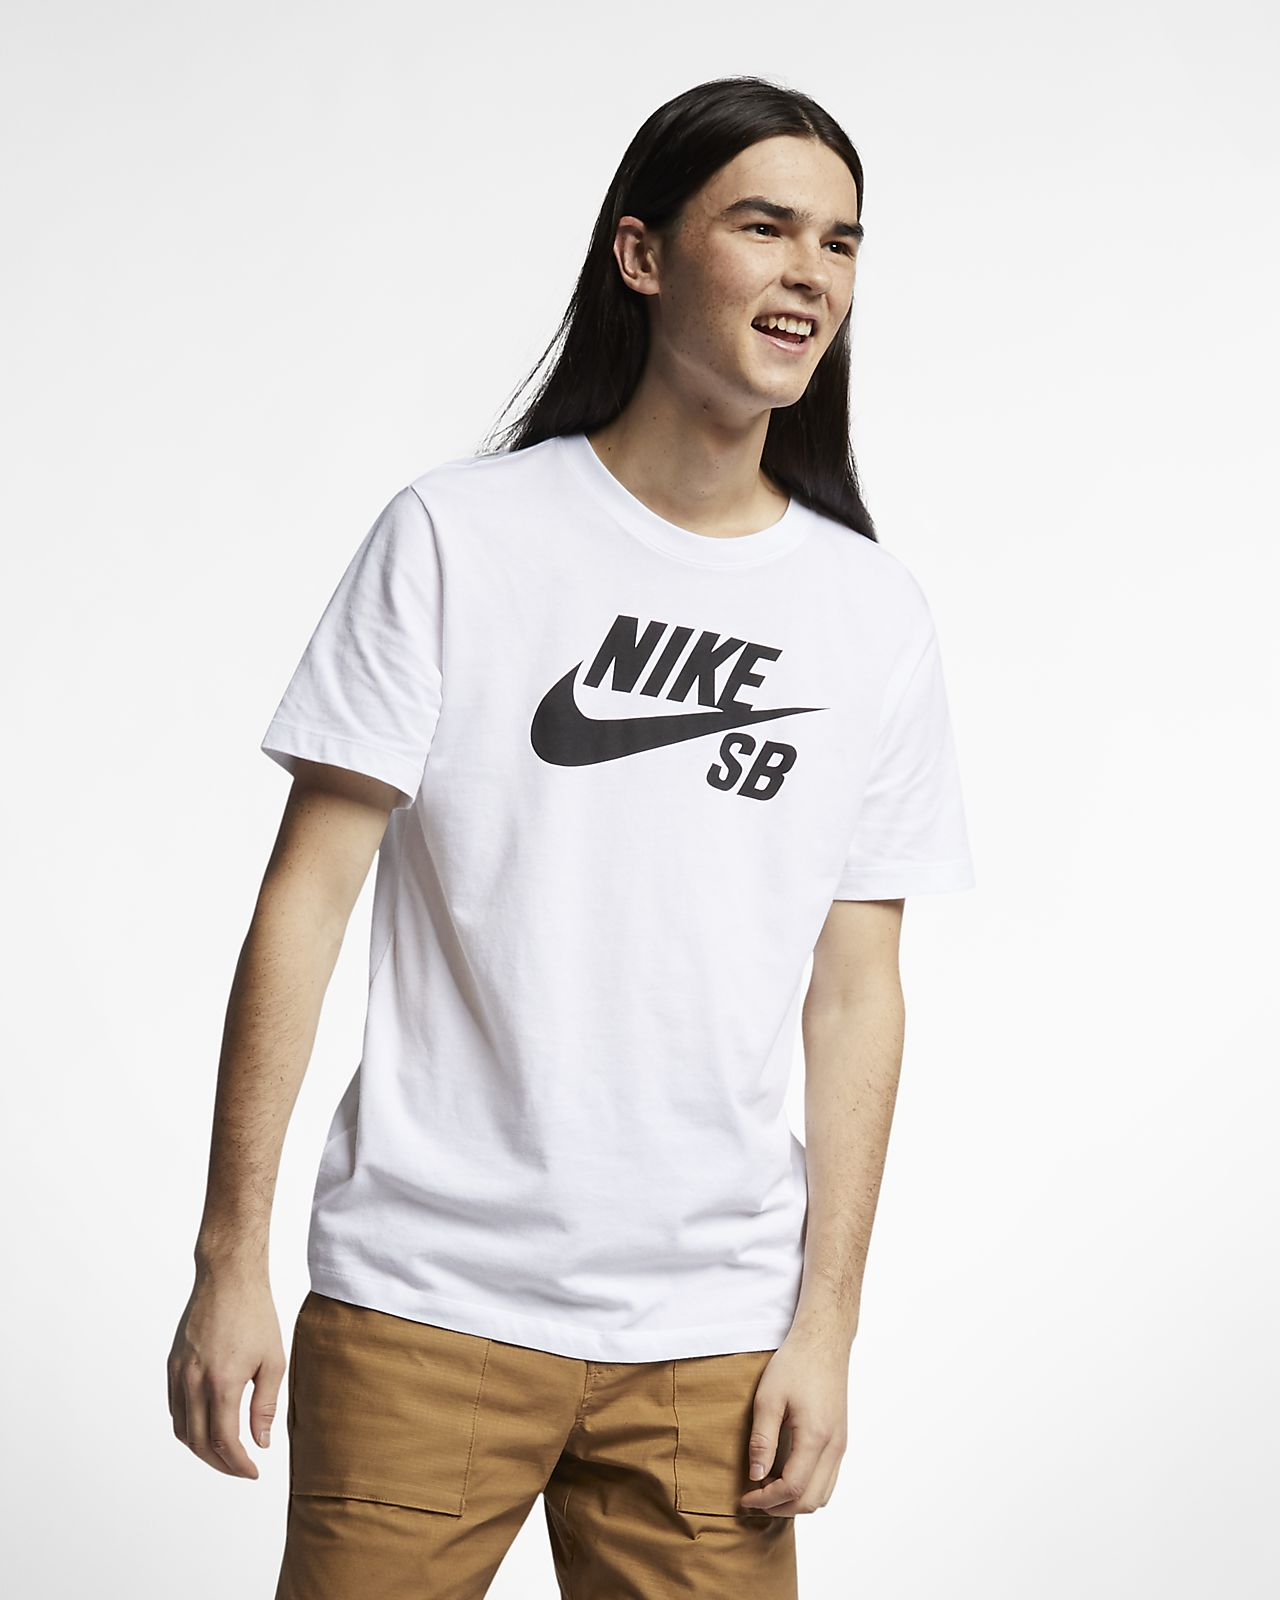 new arrivals buy online coupon codes Nike SB Dri-FIT Skate T-Shirt